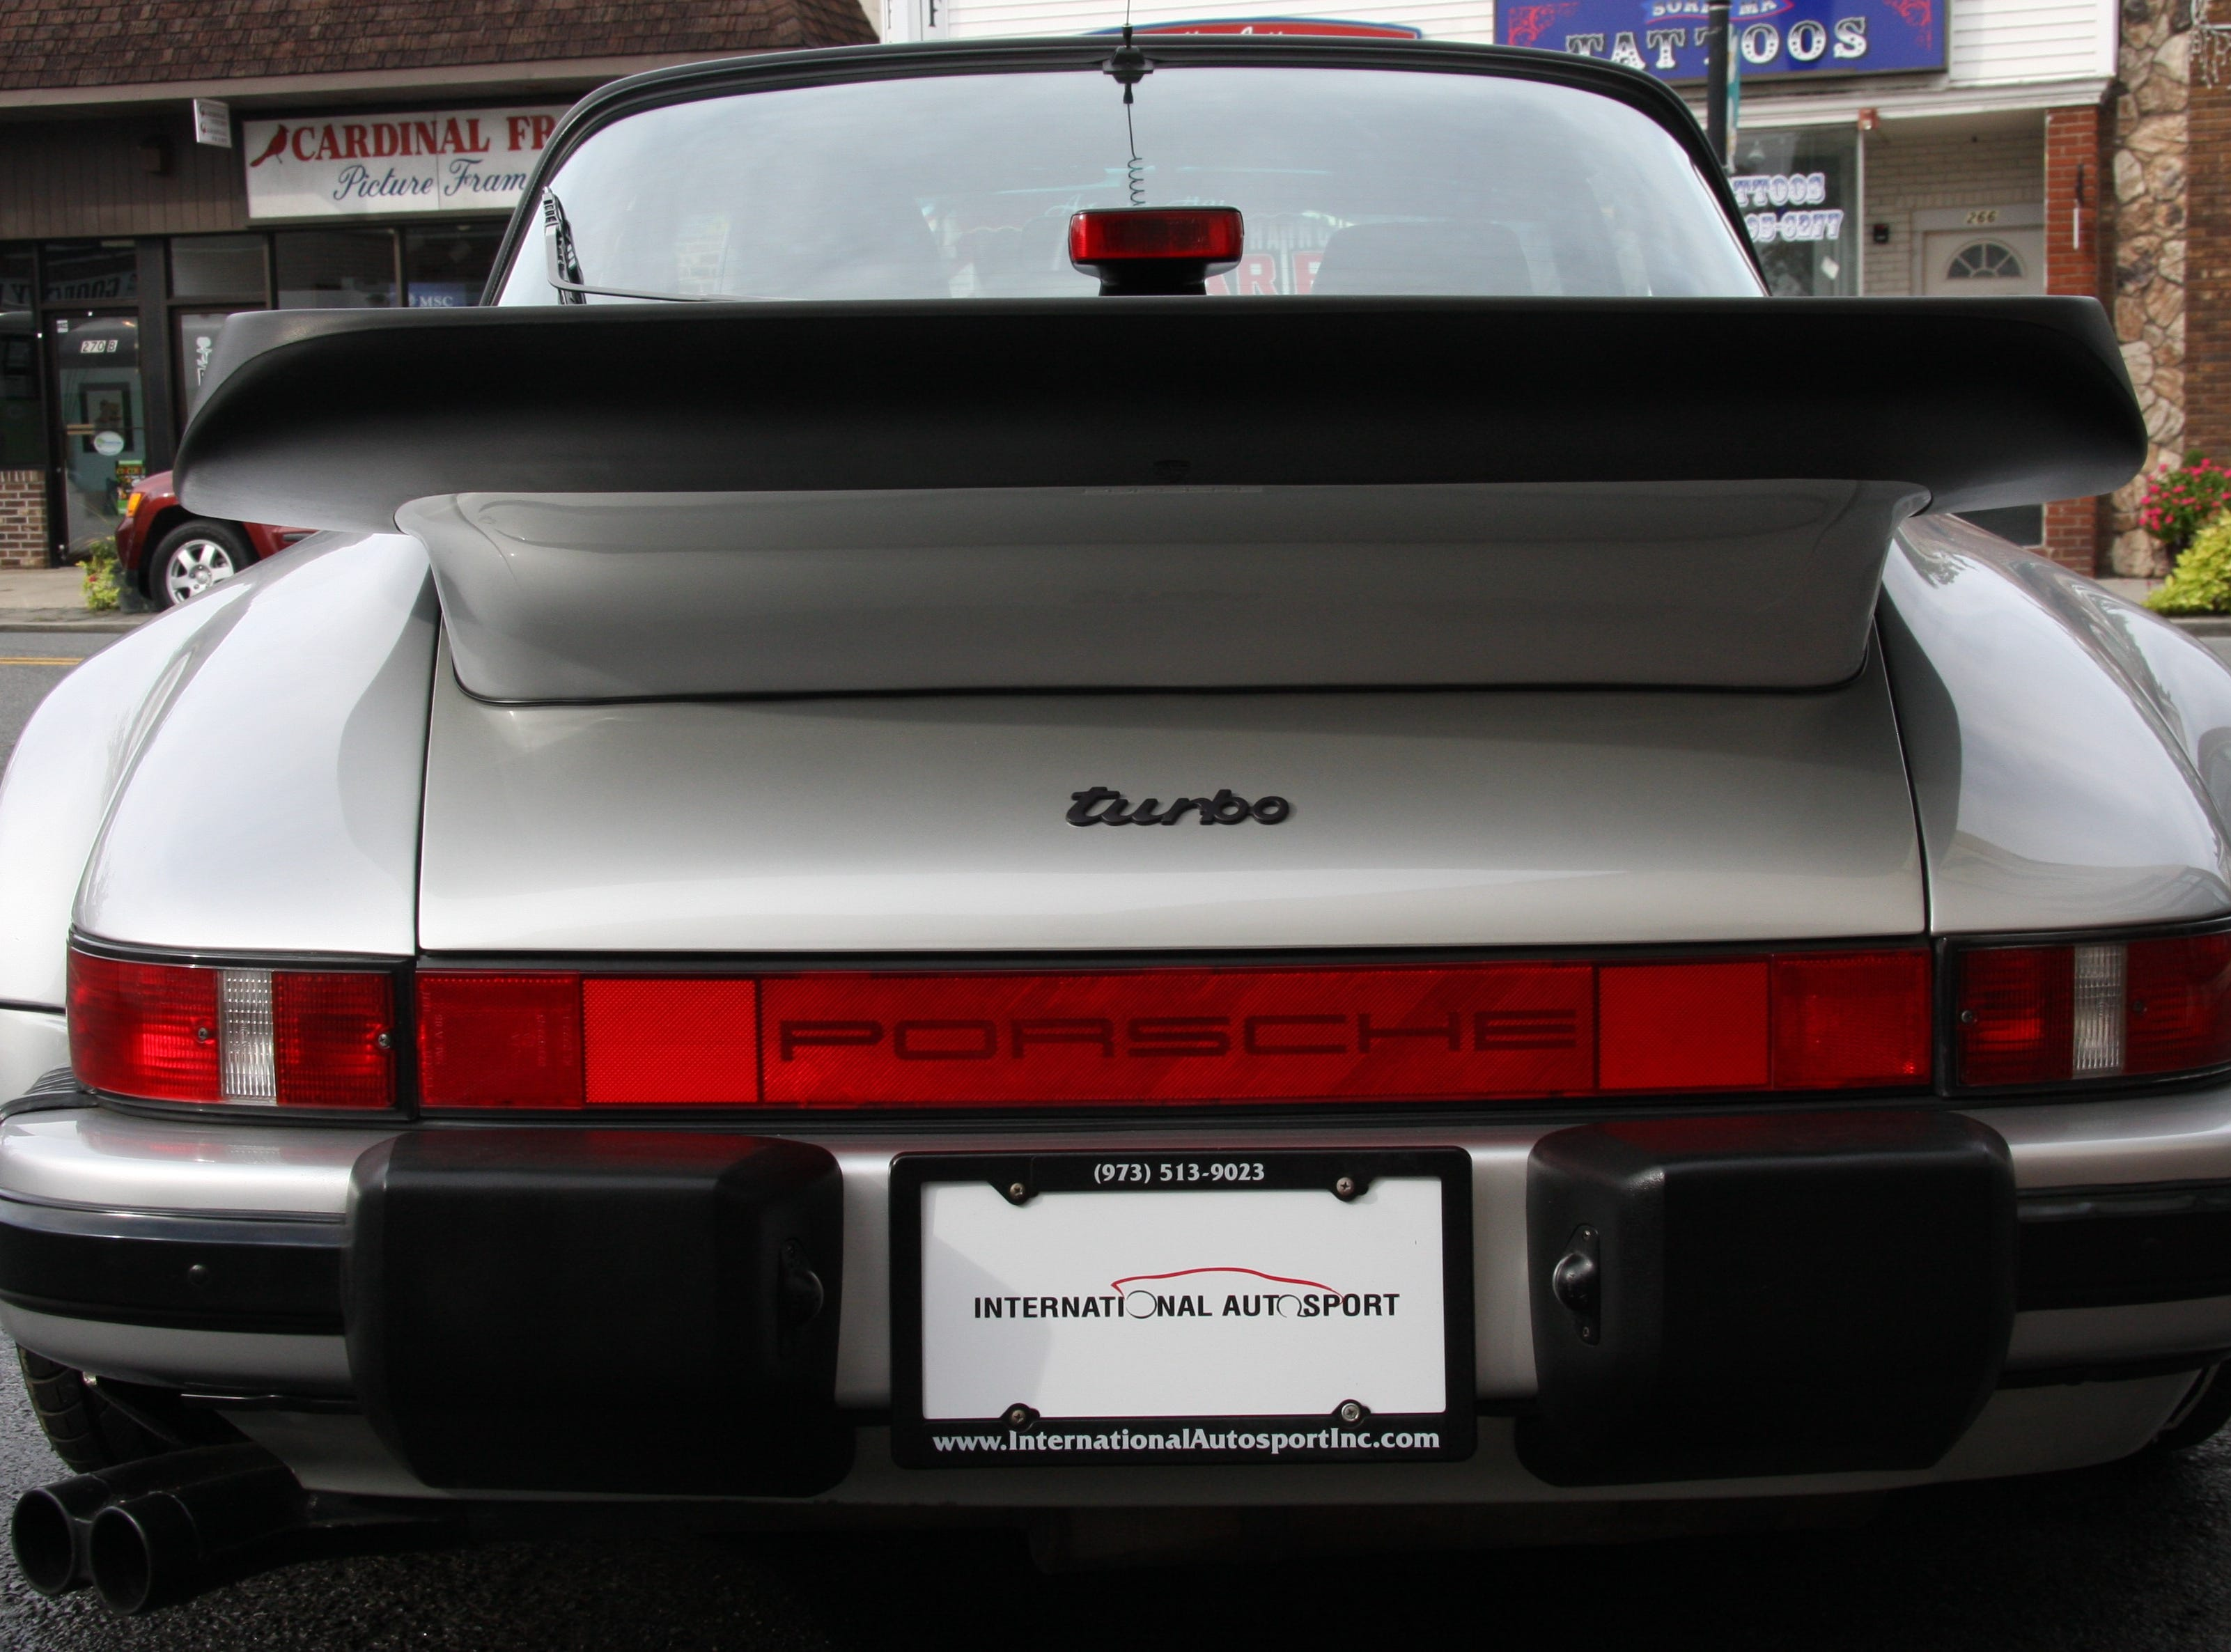 A rare Porsche 911 Turbo Targa slant-nose sold on March 8, 2019 at International Autosport, a car dealership on Wanaque Avenue in Pompton Lakes that specializes in high-end and exotic used cars.